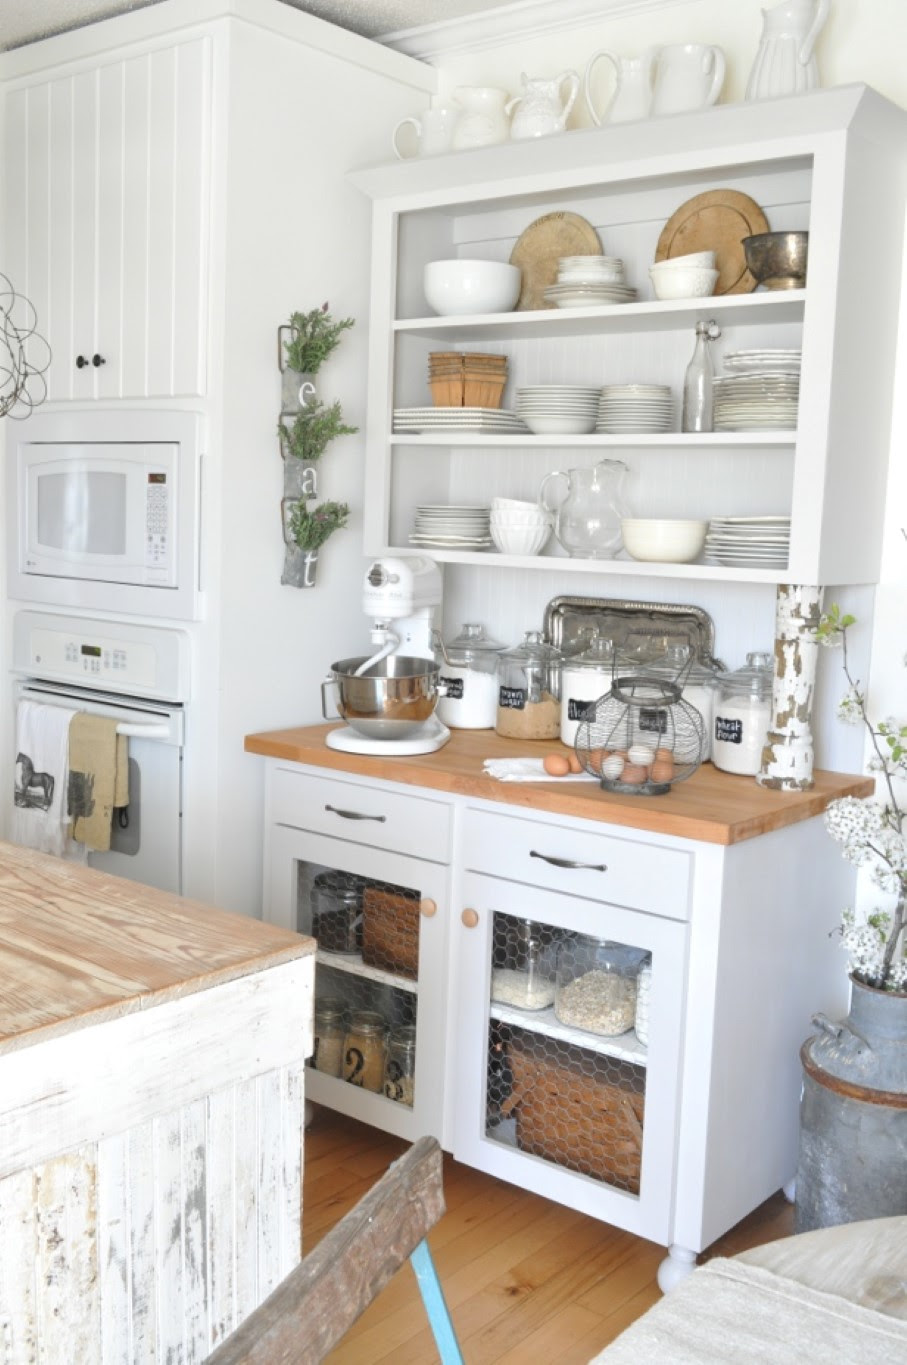 Go Vintage with Antique Cabinet for Chic Kitchen - HomesFeed